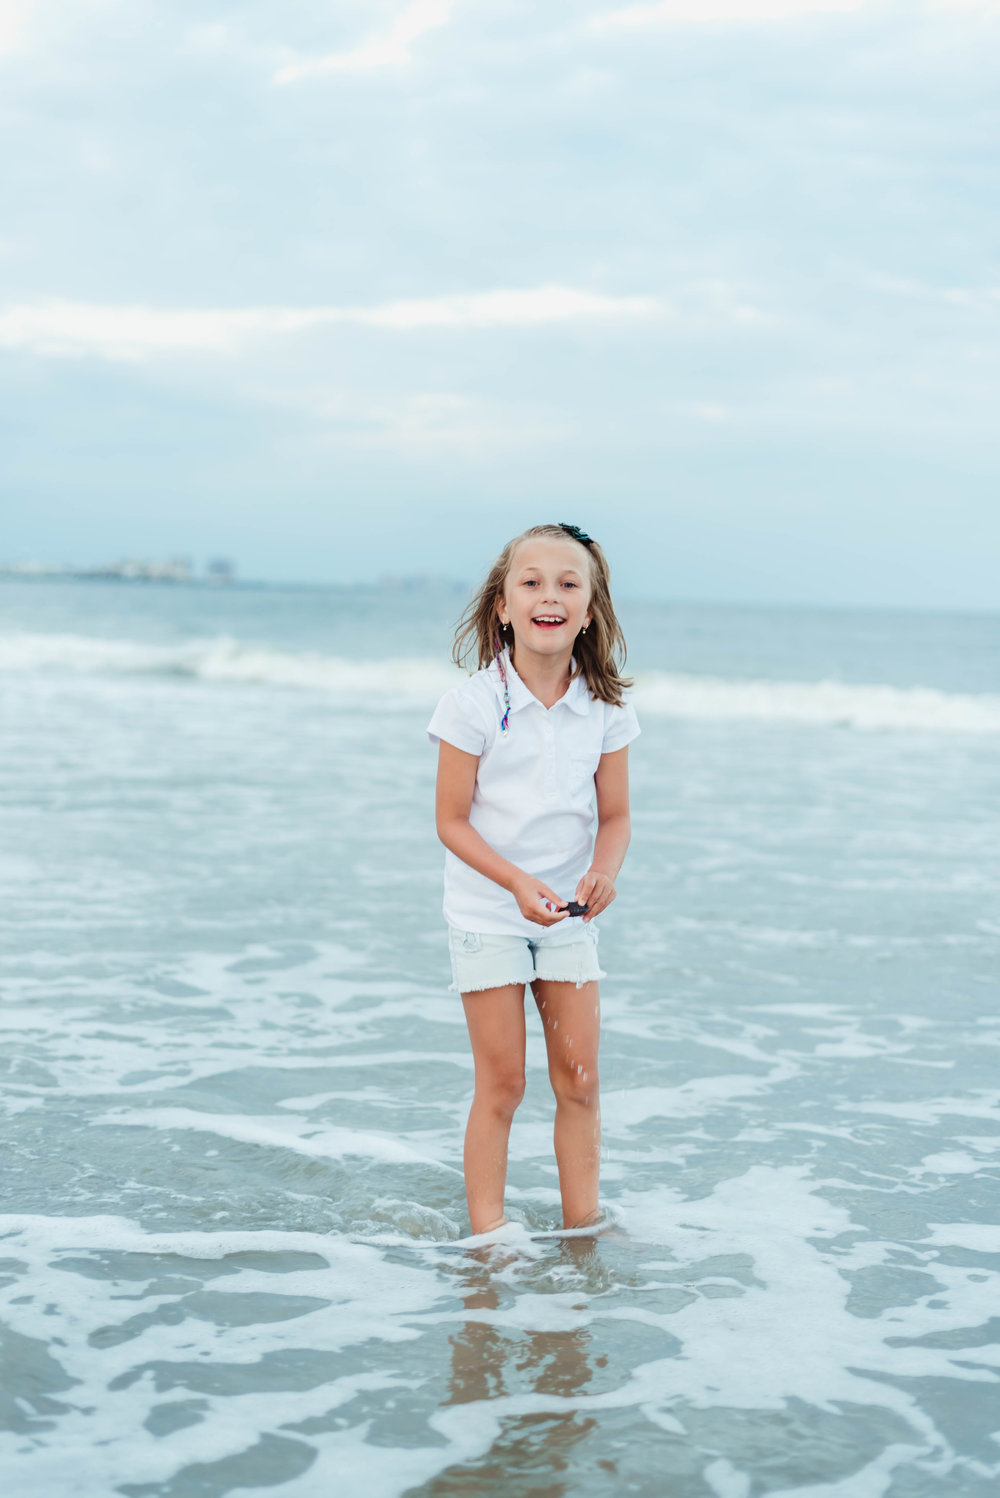 Magdalena Studios - Beach Family Photographer in Ocean City New Jersey NJ40.jpg